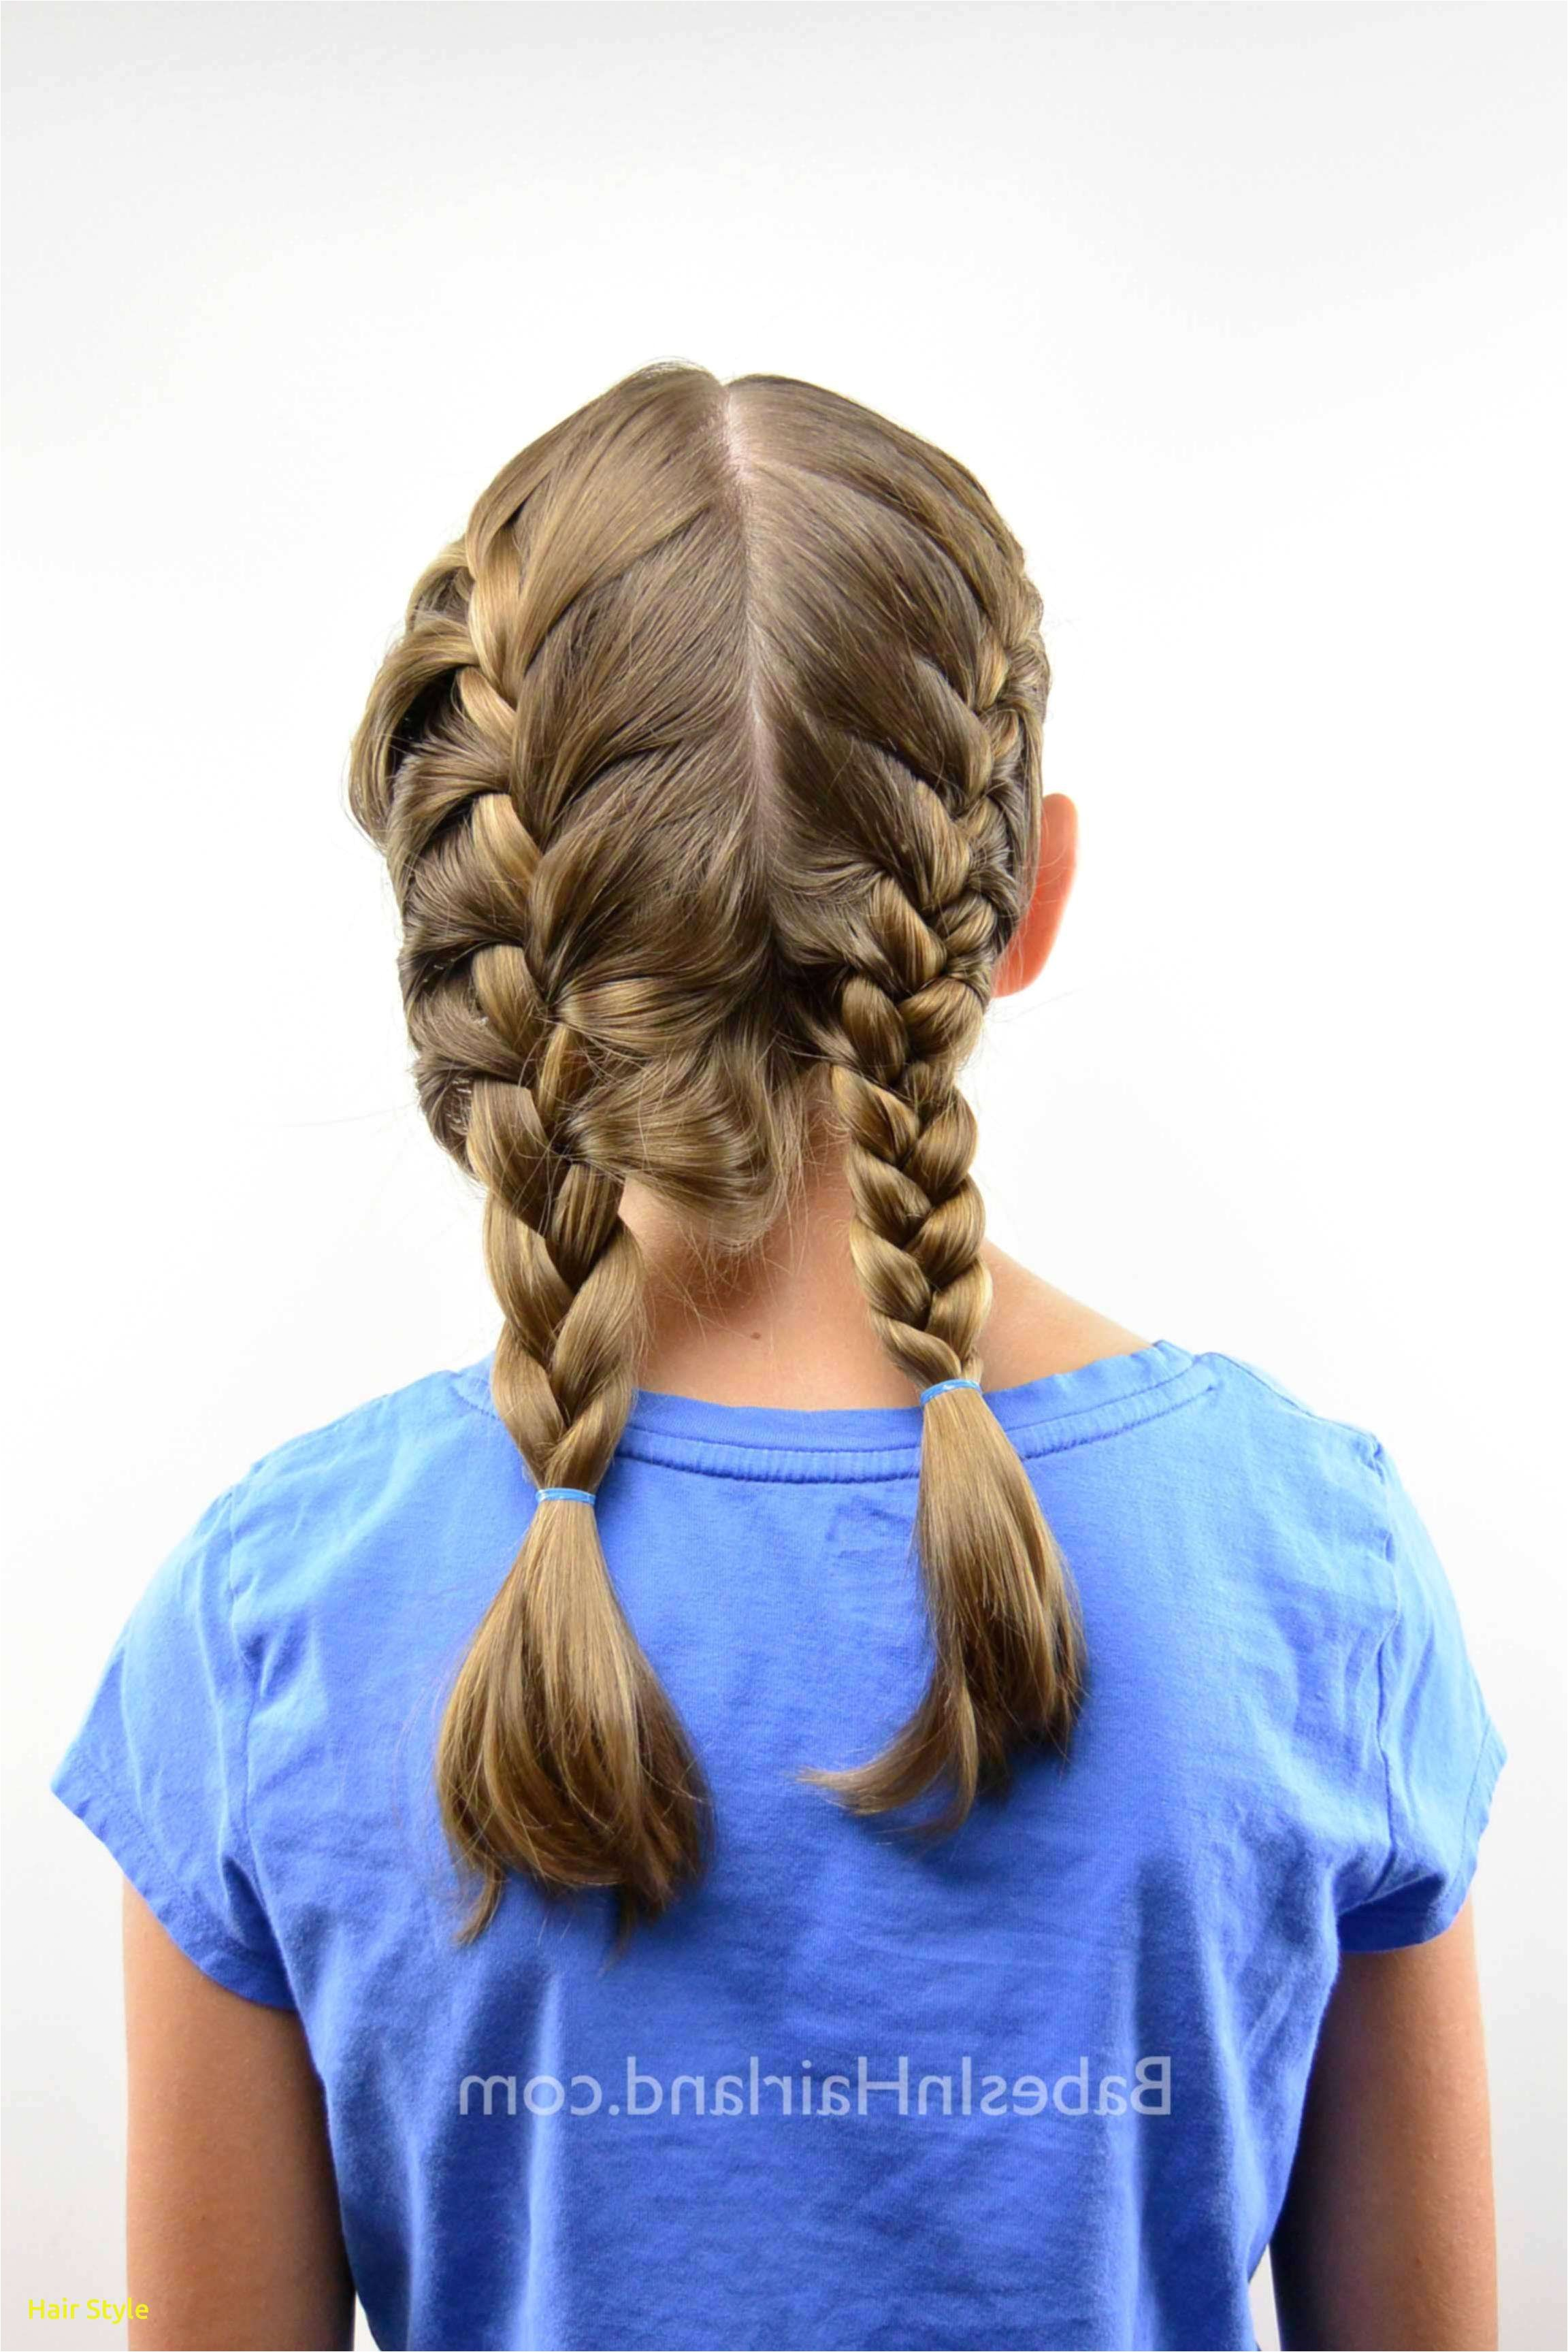 Braided Pigtails Hairstyle Fresh Pigtail Braids Short Hair